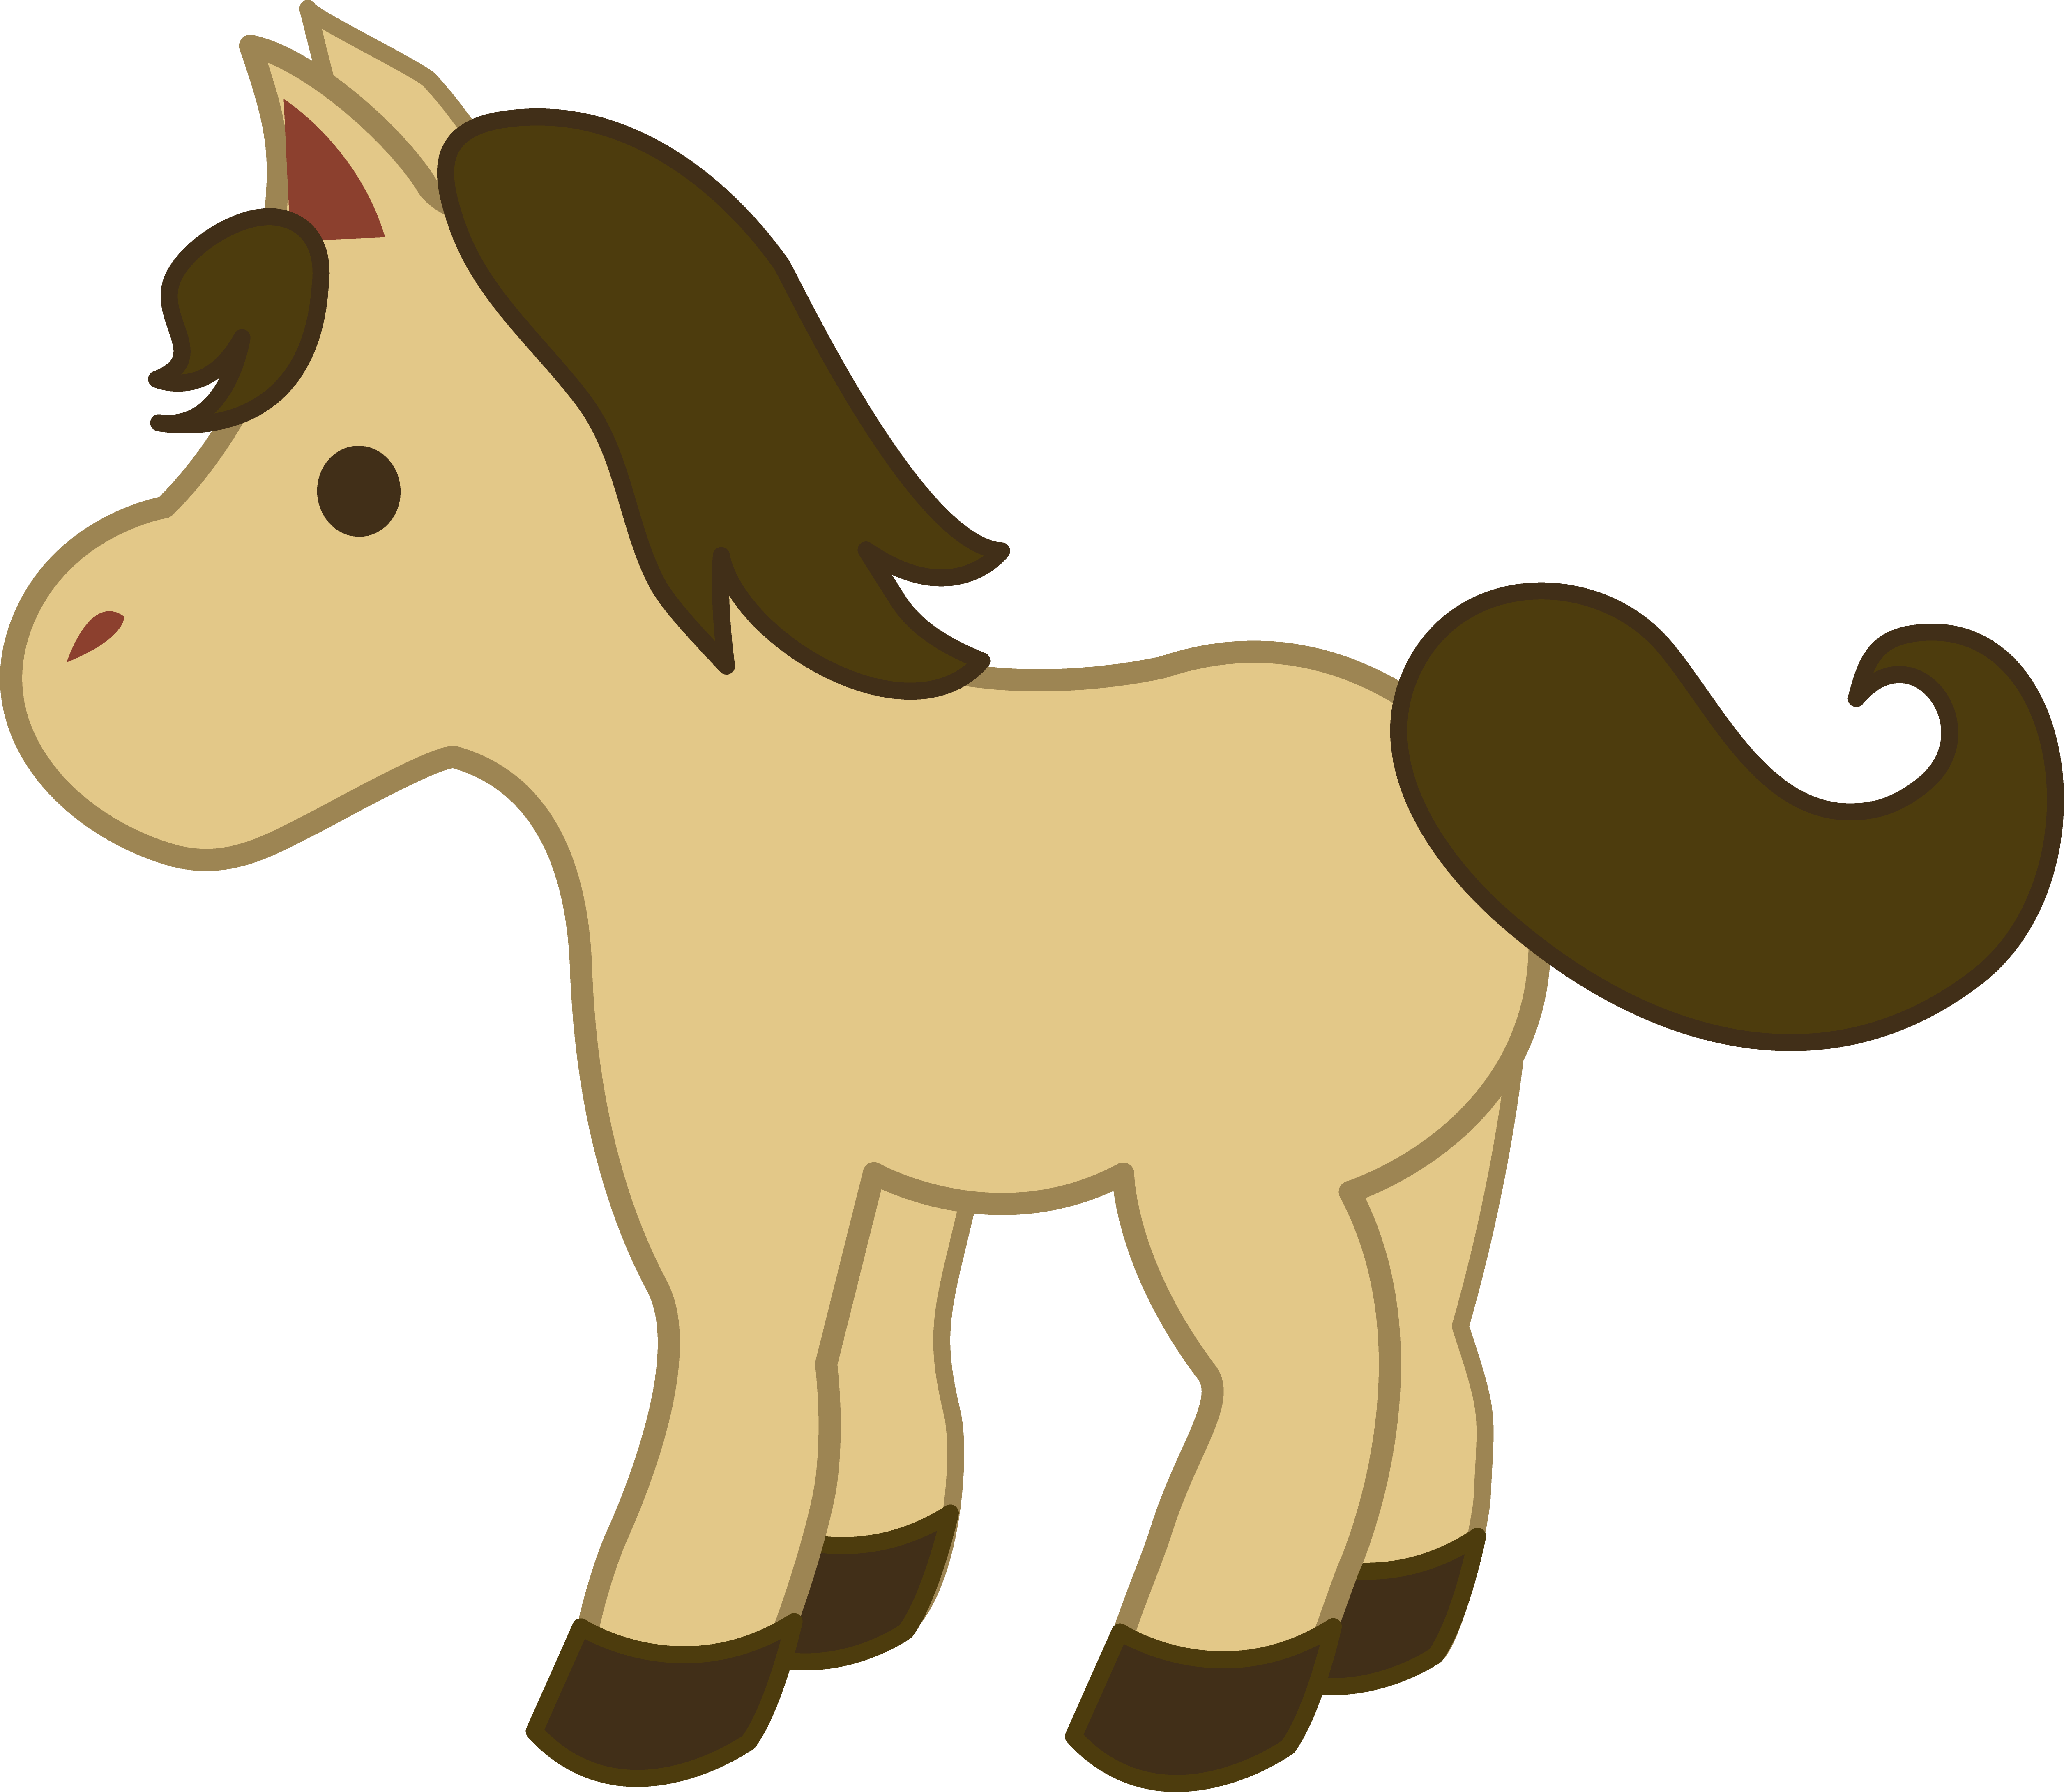 mustang horse clipart at getdrawings com free for personal use rh getdrawings com seahorse clipart images horse clipart pictures